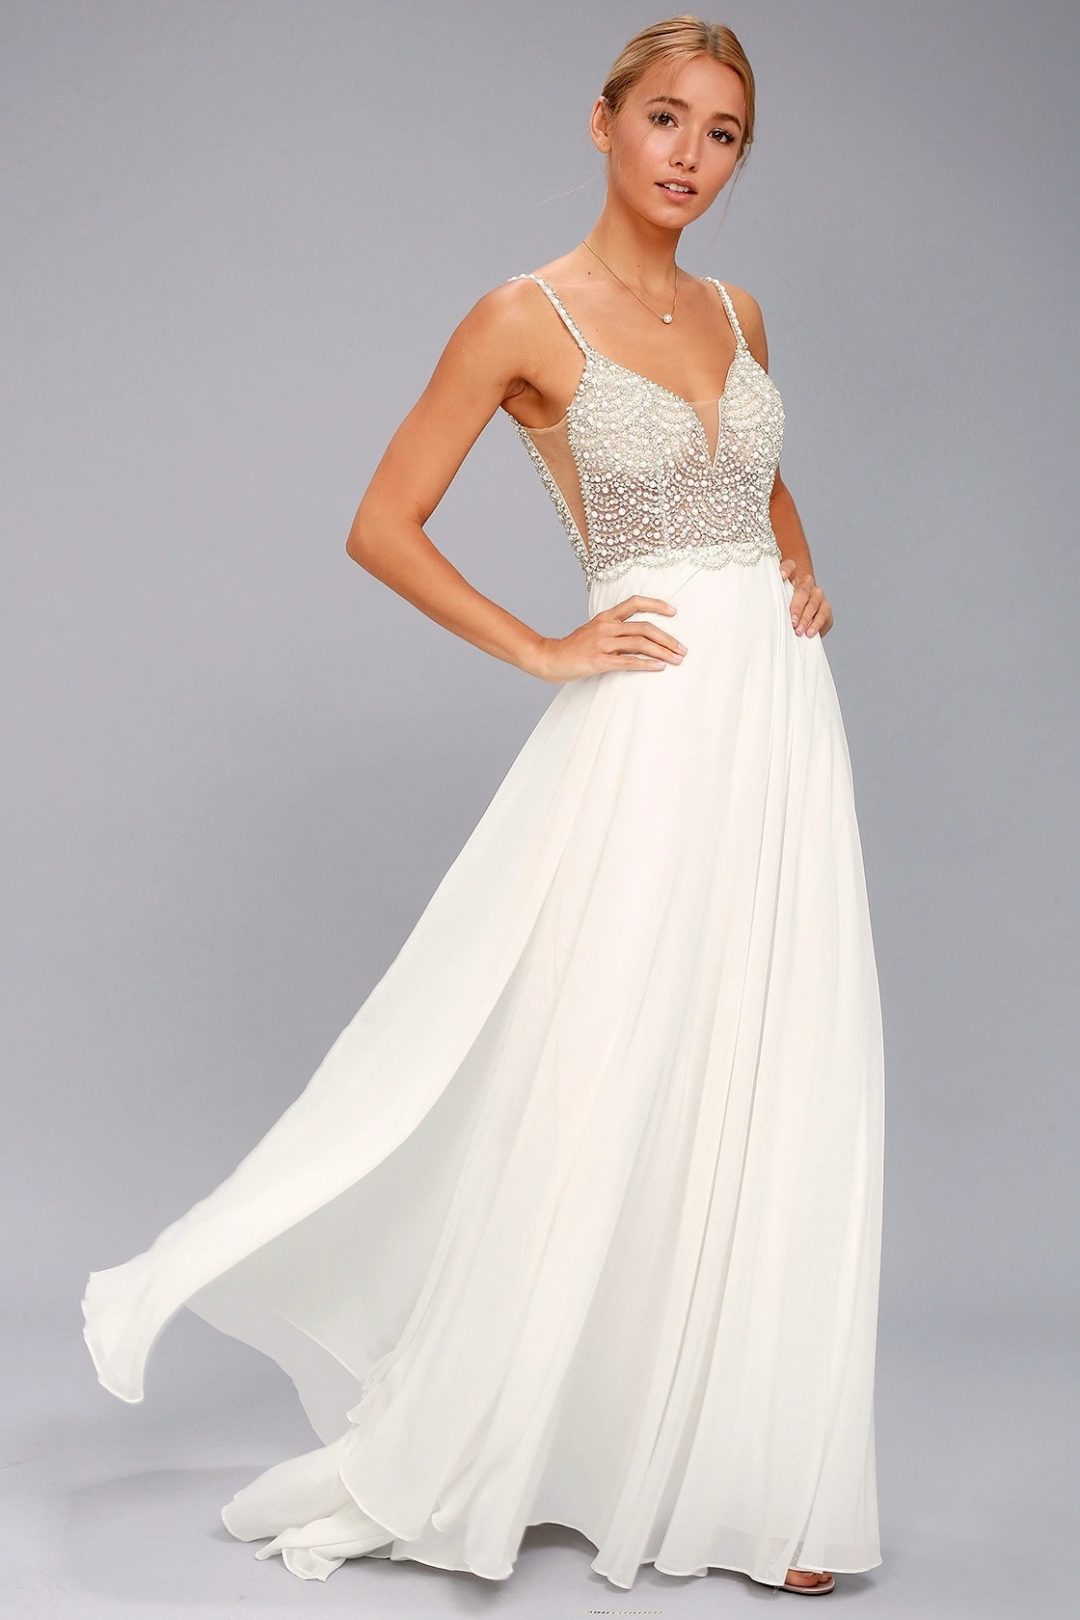 Affordable A-line wedding dress with pearls and rhinestones